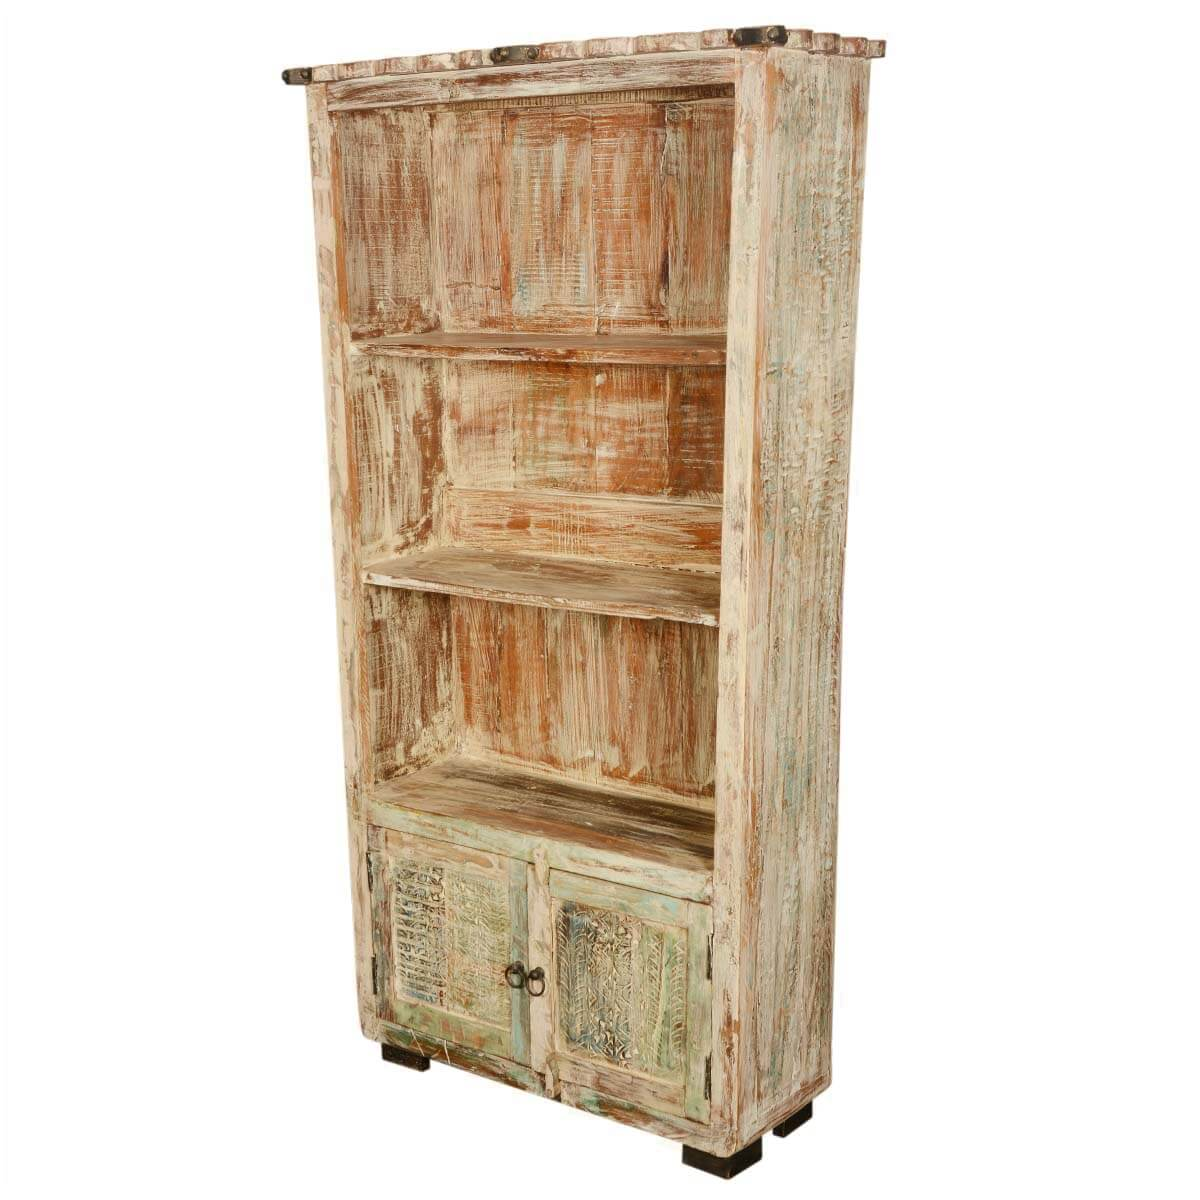 Sefton Rustic Reclaimed Wood 3 Open Shelf Bookcase With Doors